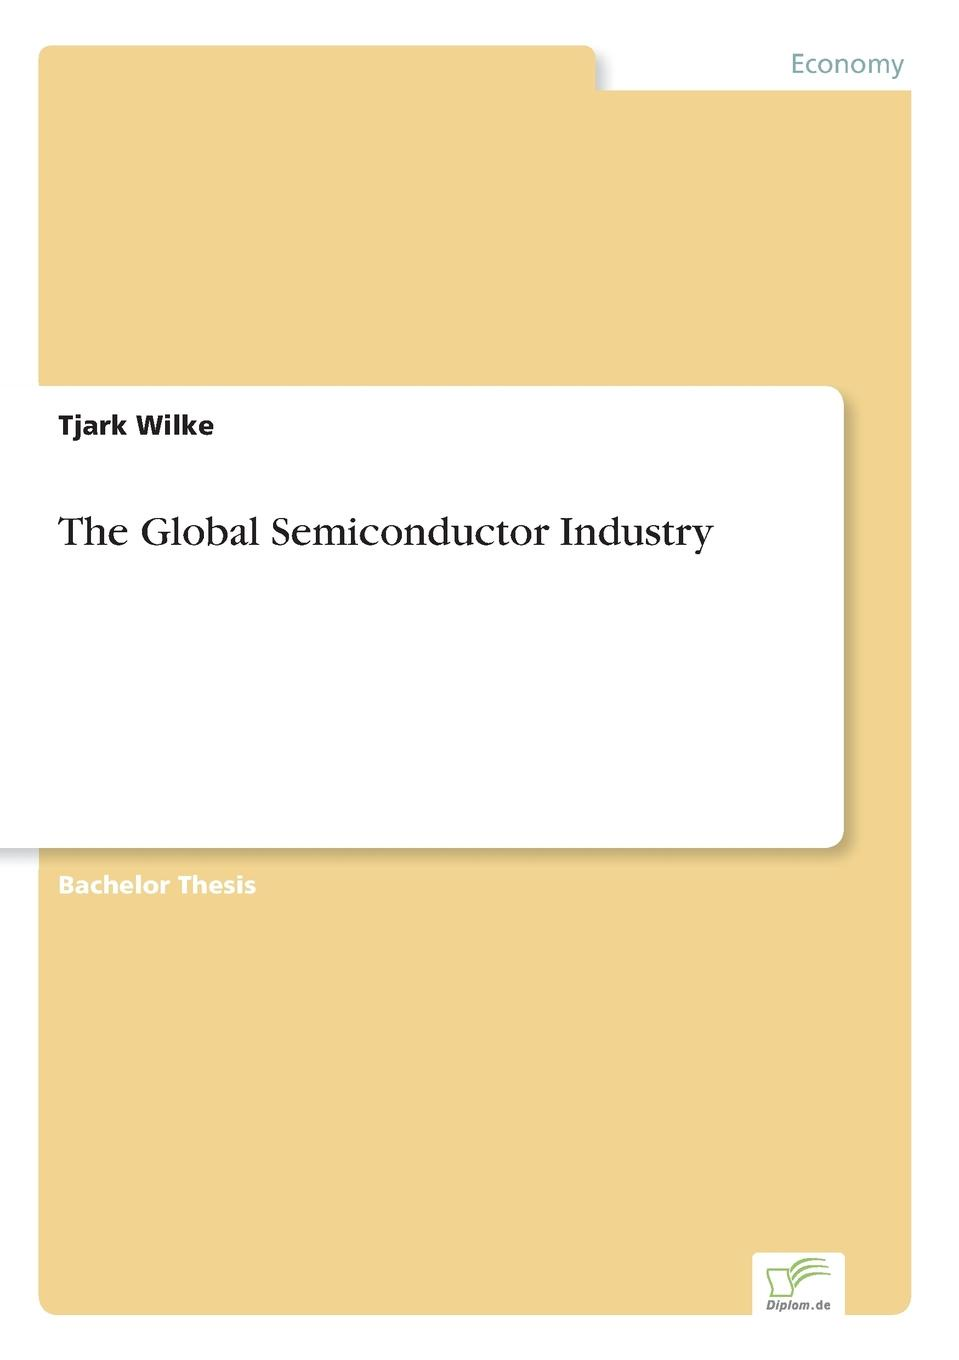 Tjark Wilke The Global Semiconductor Industry halil kiymaz market microstructure in emerging and developed markets price discovery information flows and transaction costs